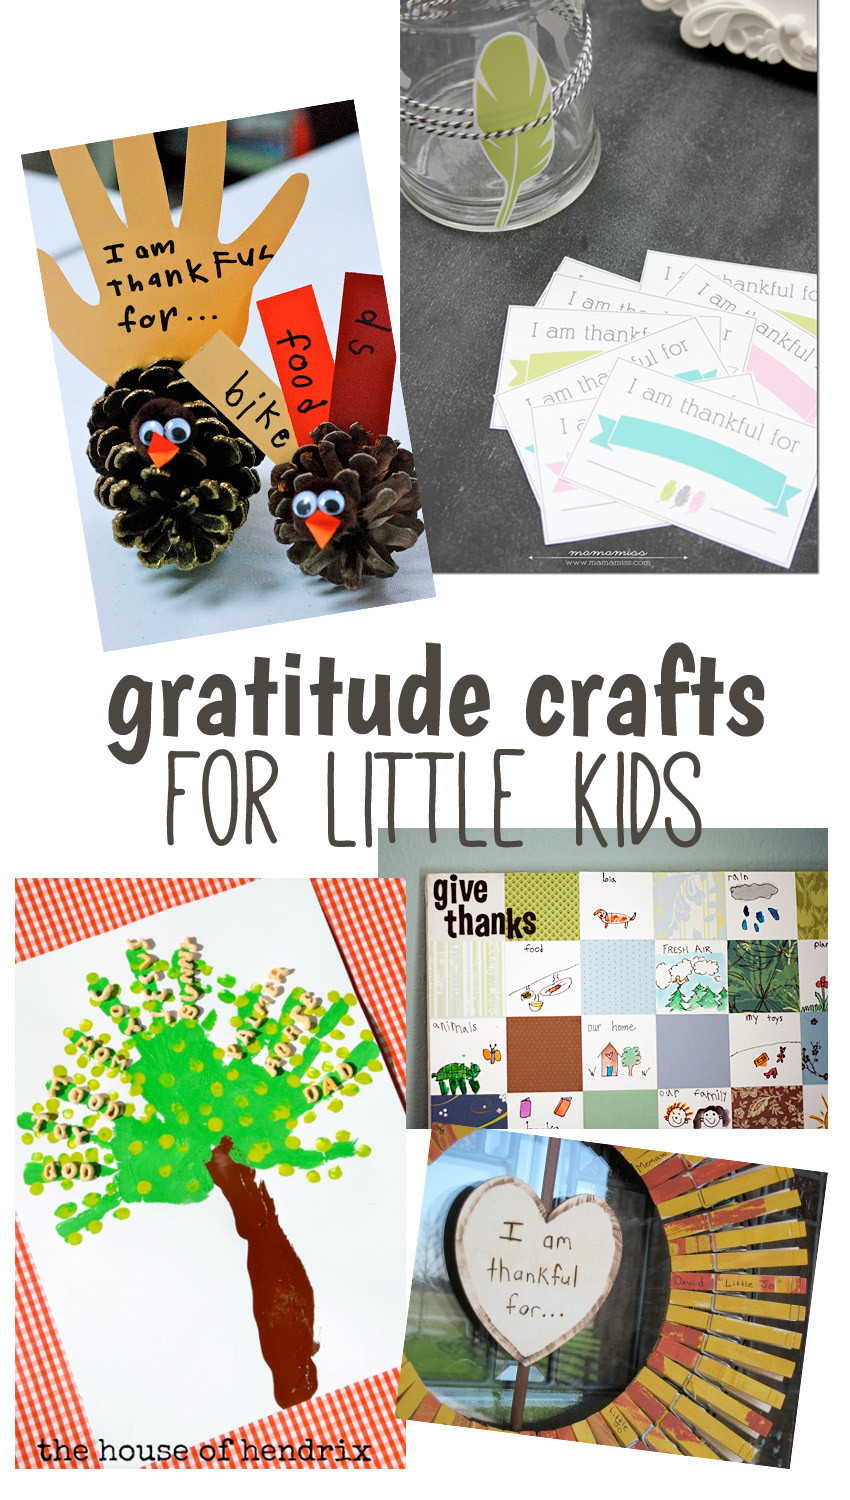 Best ideas about Projects For Little Kids . Save or Pin 10 Creative Gratitude Crafts for Big and Little Kids Now.